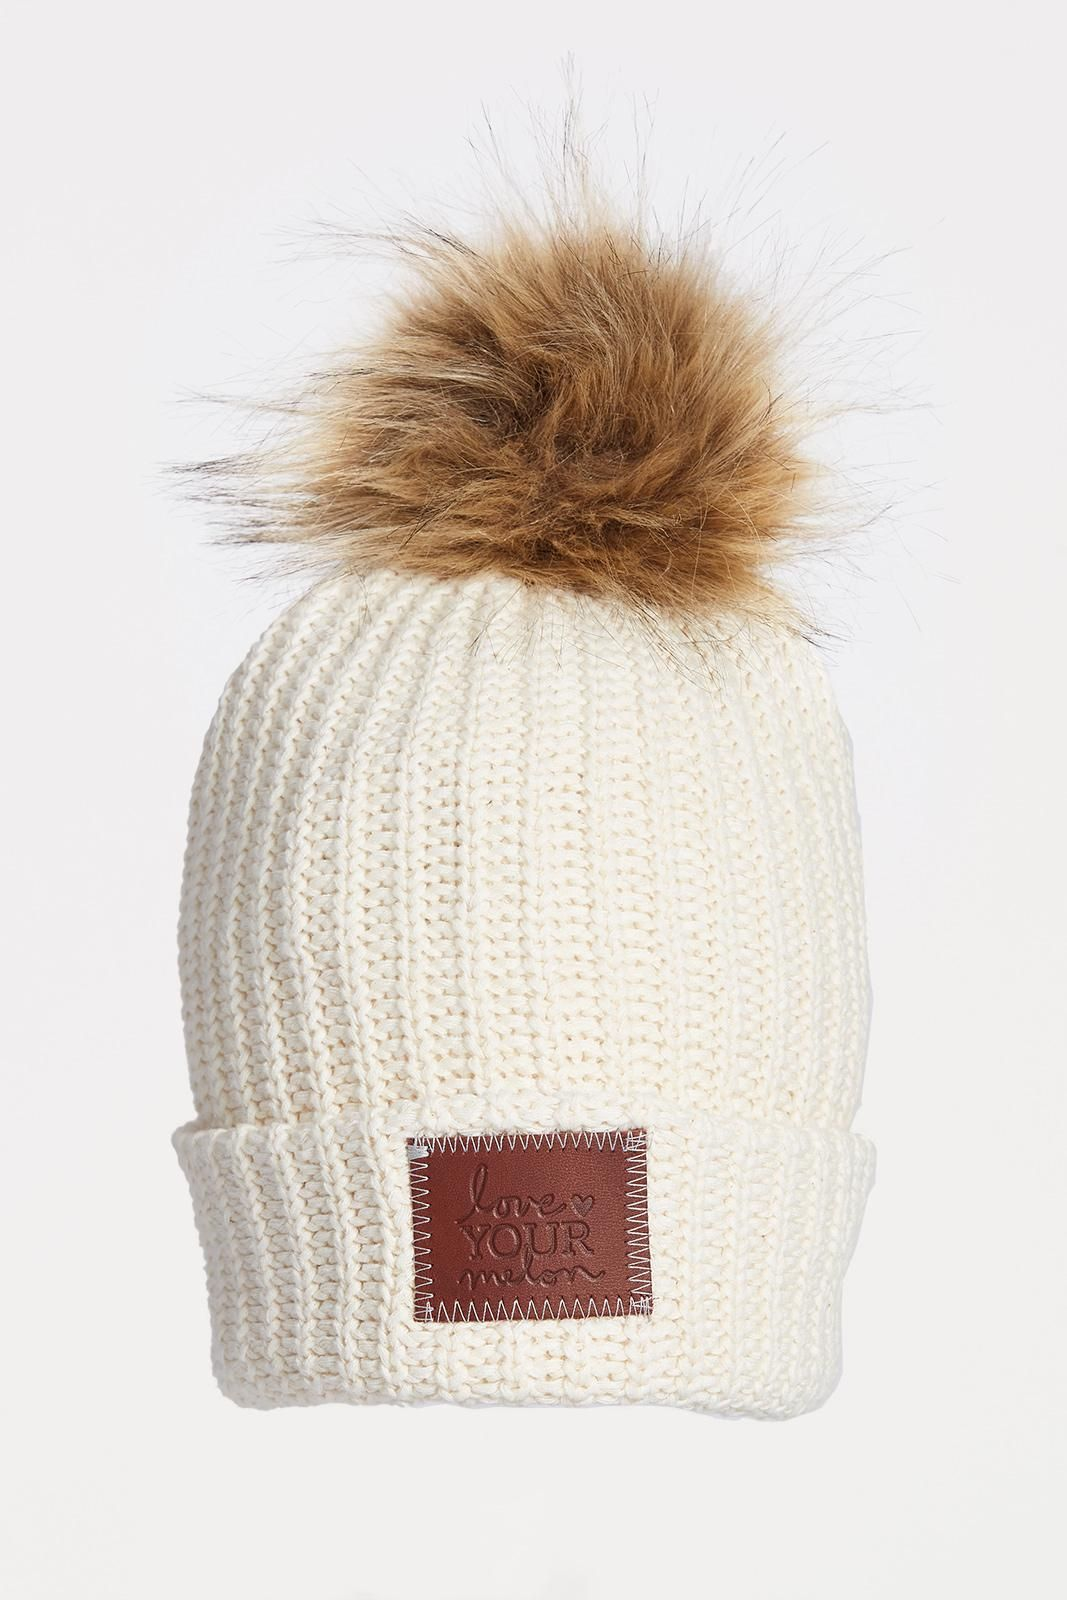 31c7fe0be11f3 LOVE YOUR MELON White Speckled Pom Beanie